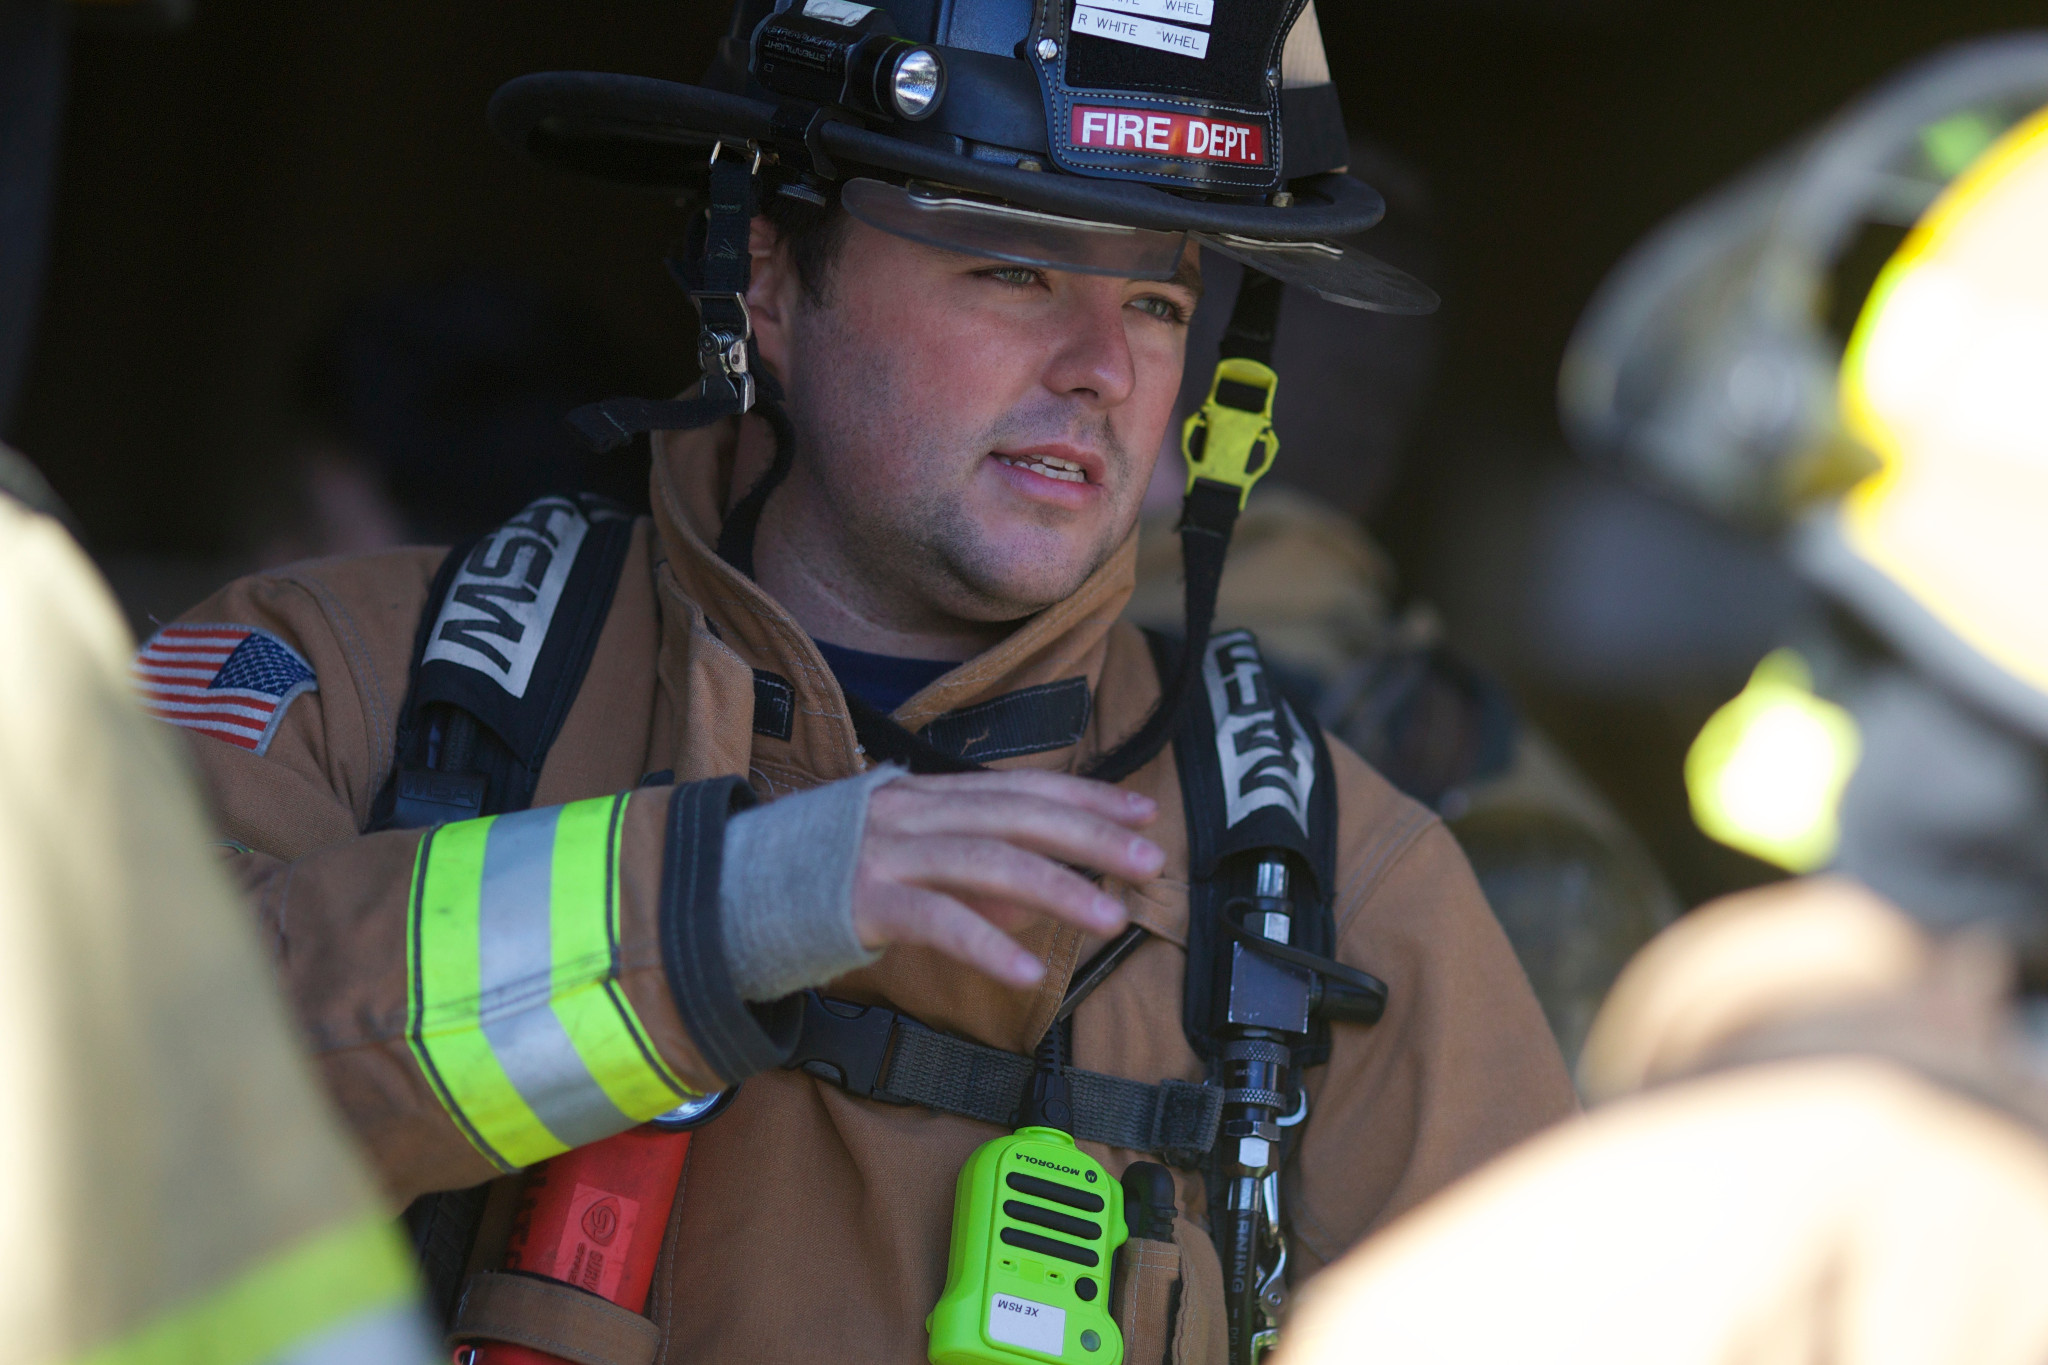 Motorola_Two_Way_Radio_Illinois_fire_ems